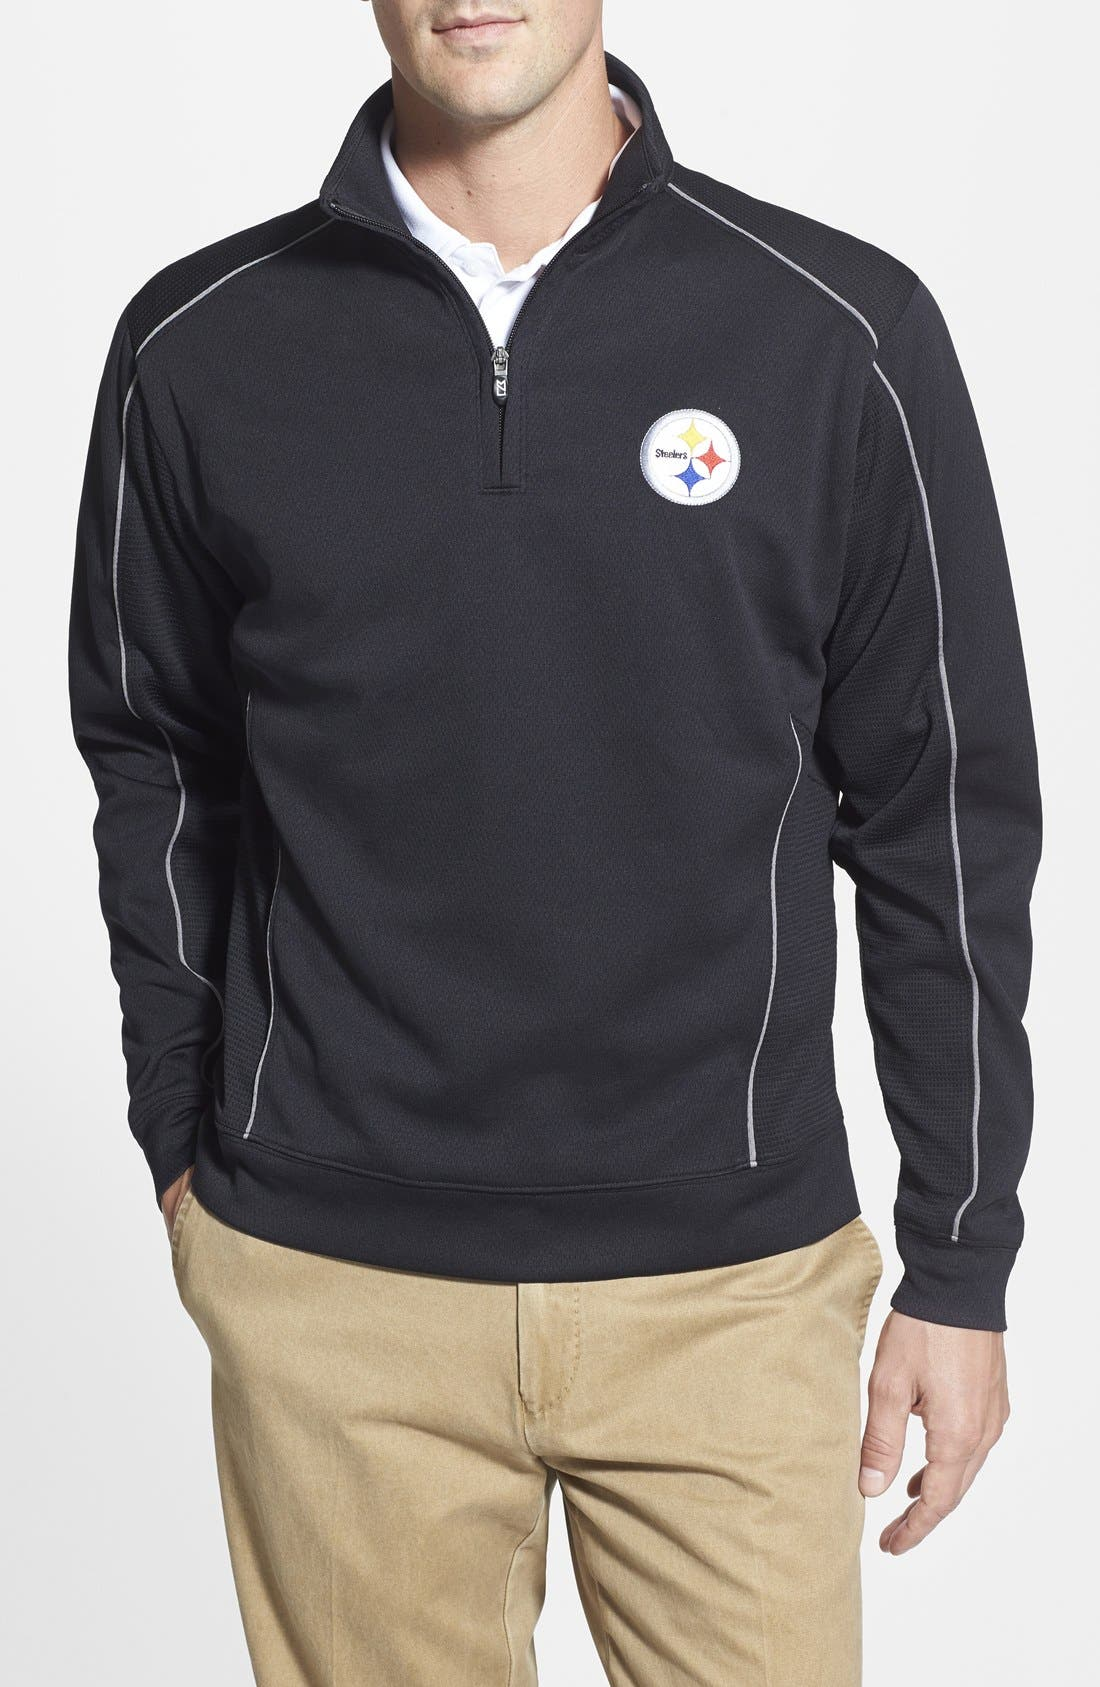 Cutter & Buck 'Pittsburgh Steelers - Edge' DryTec Moisture Wicking Half Zip Pullover